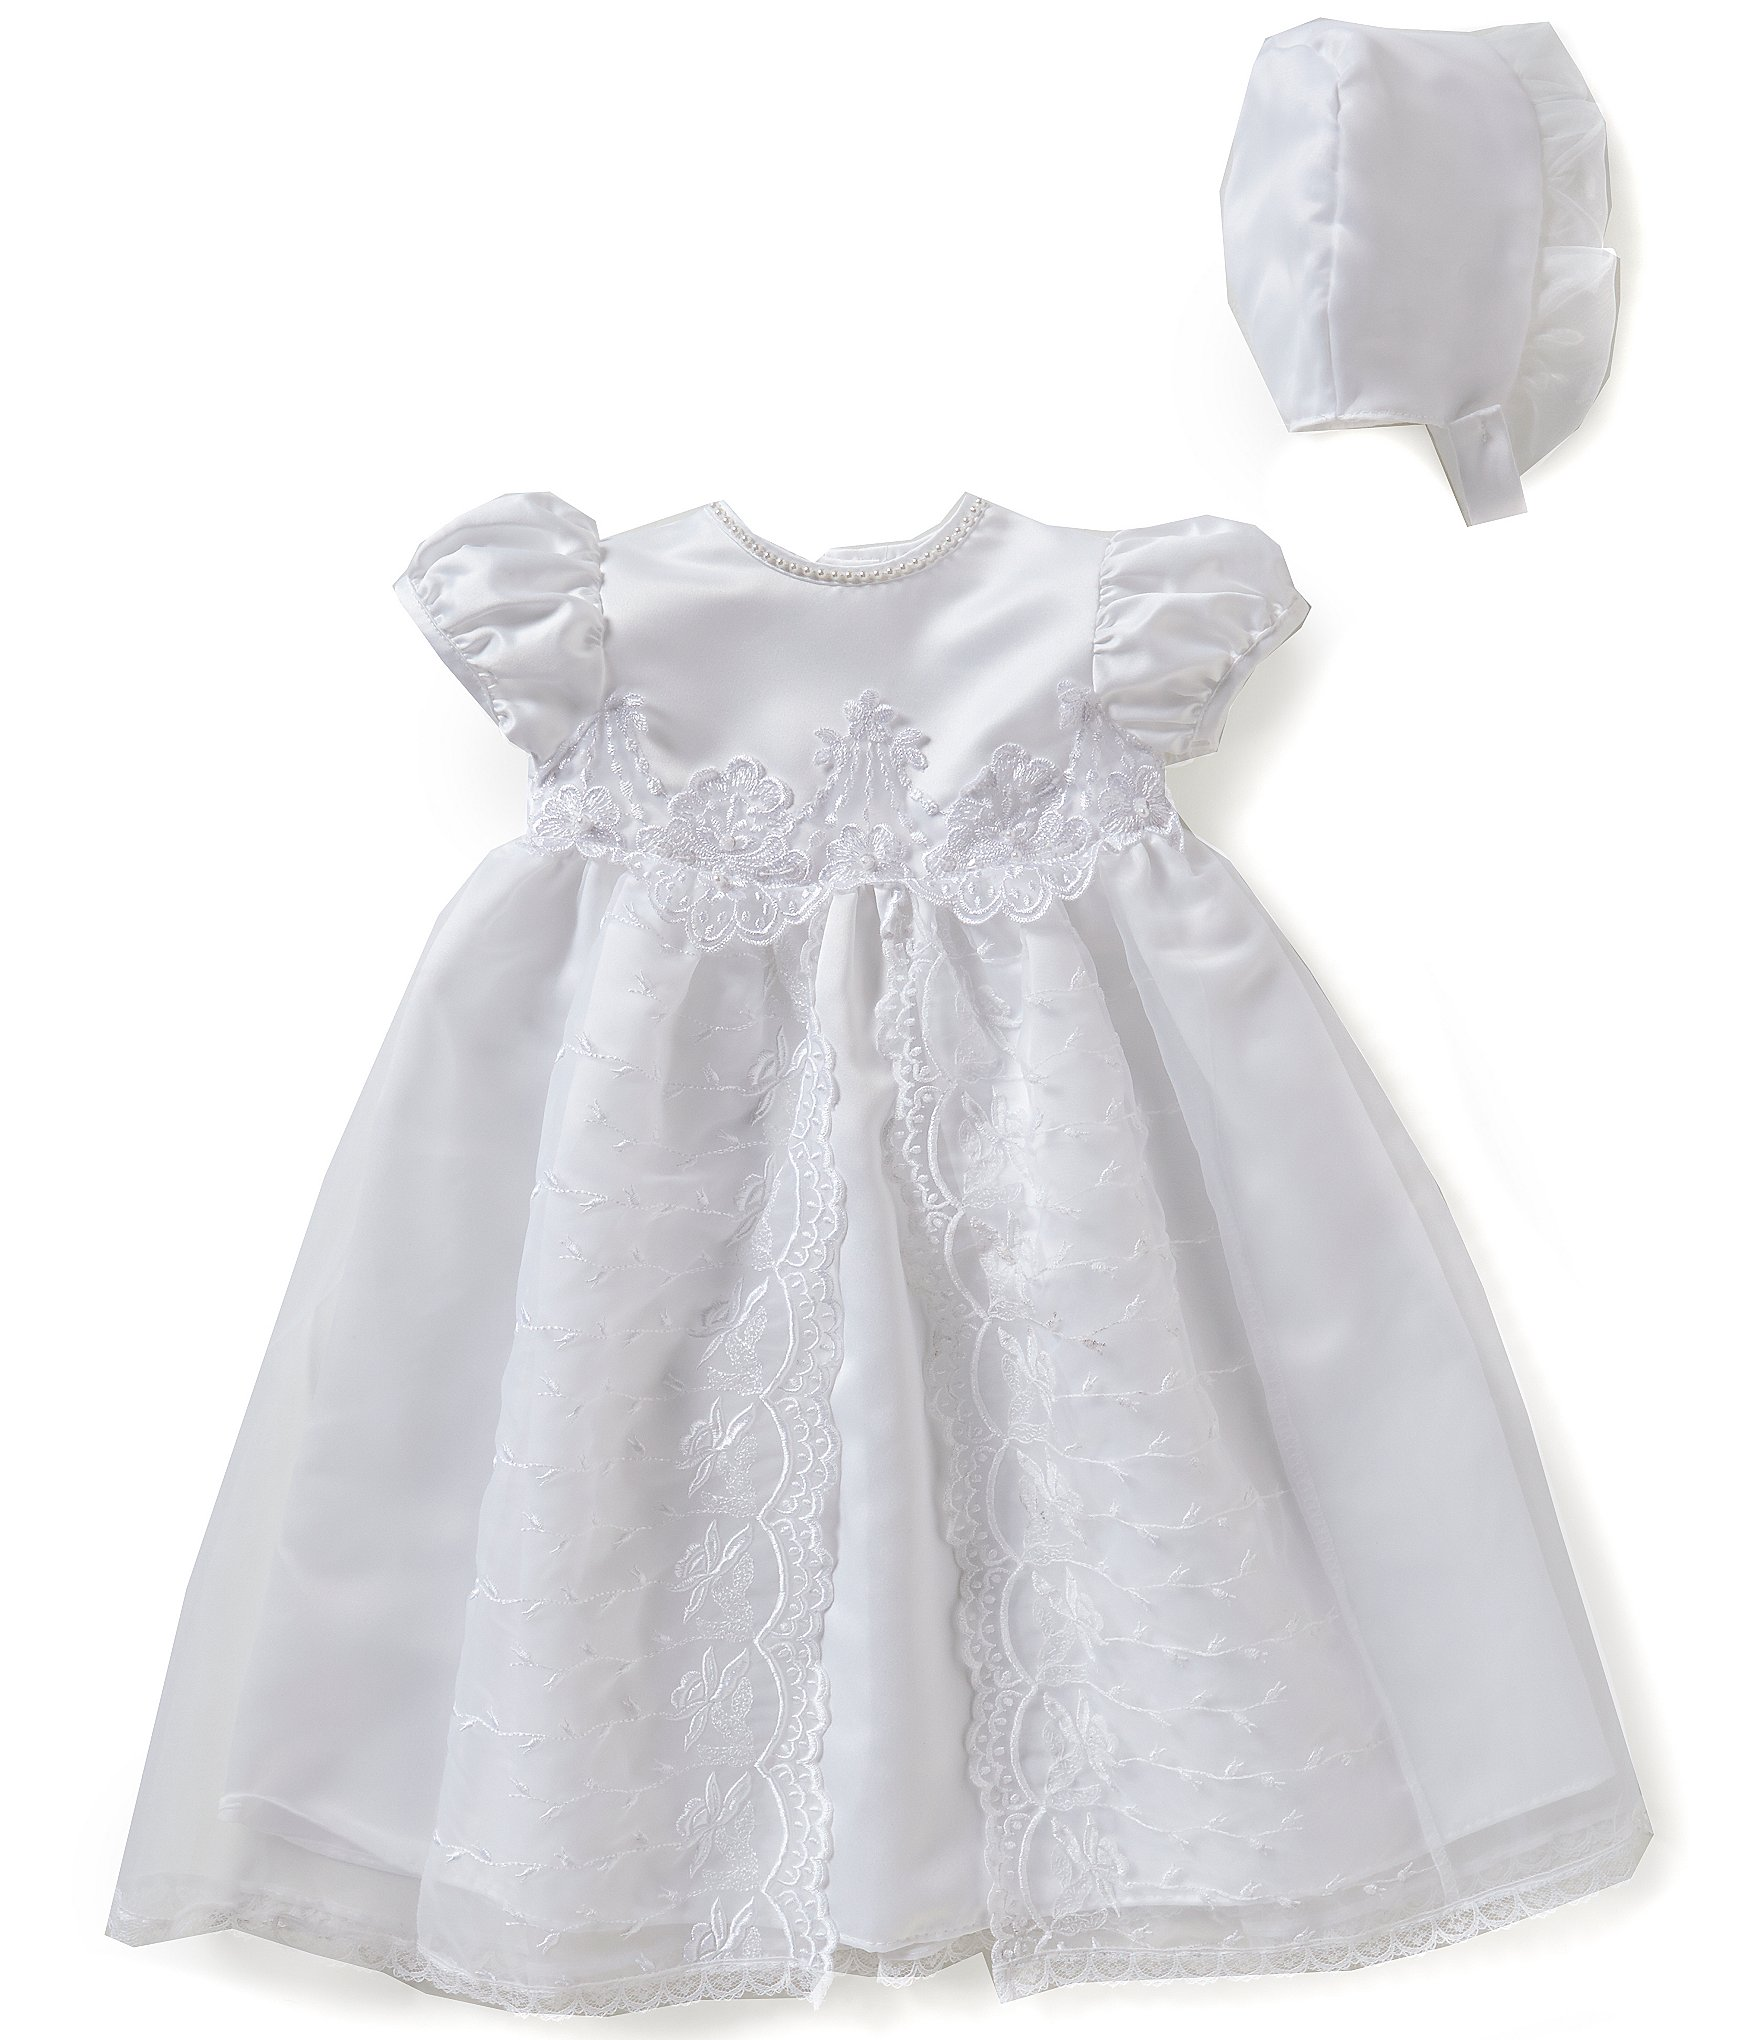 Baby Girl Christening Dresses Gowns Accessories Dillard S